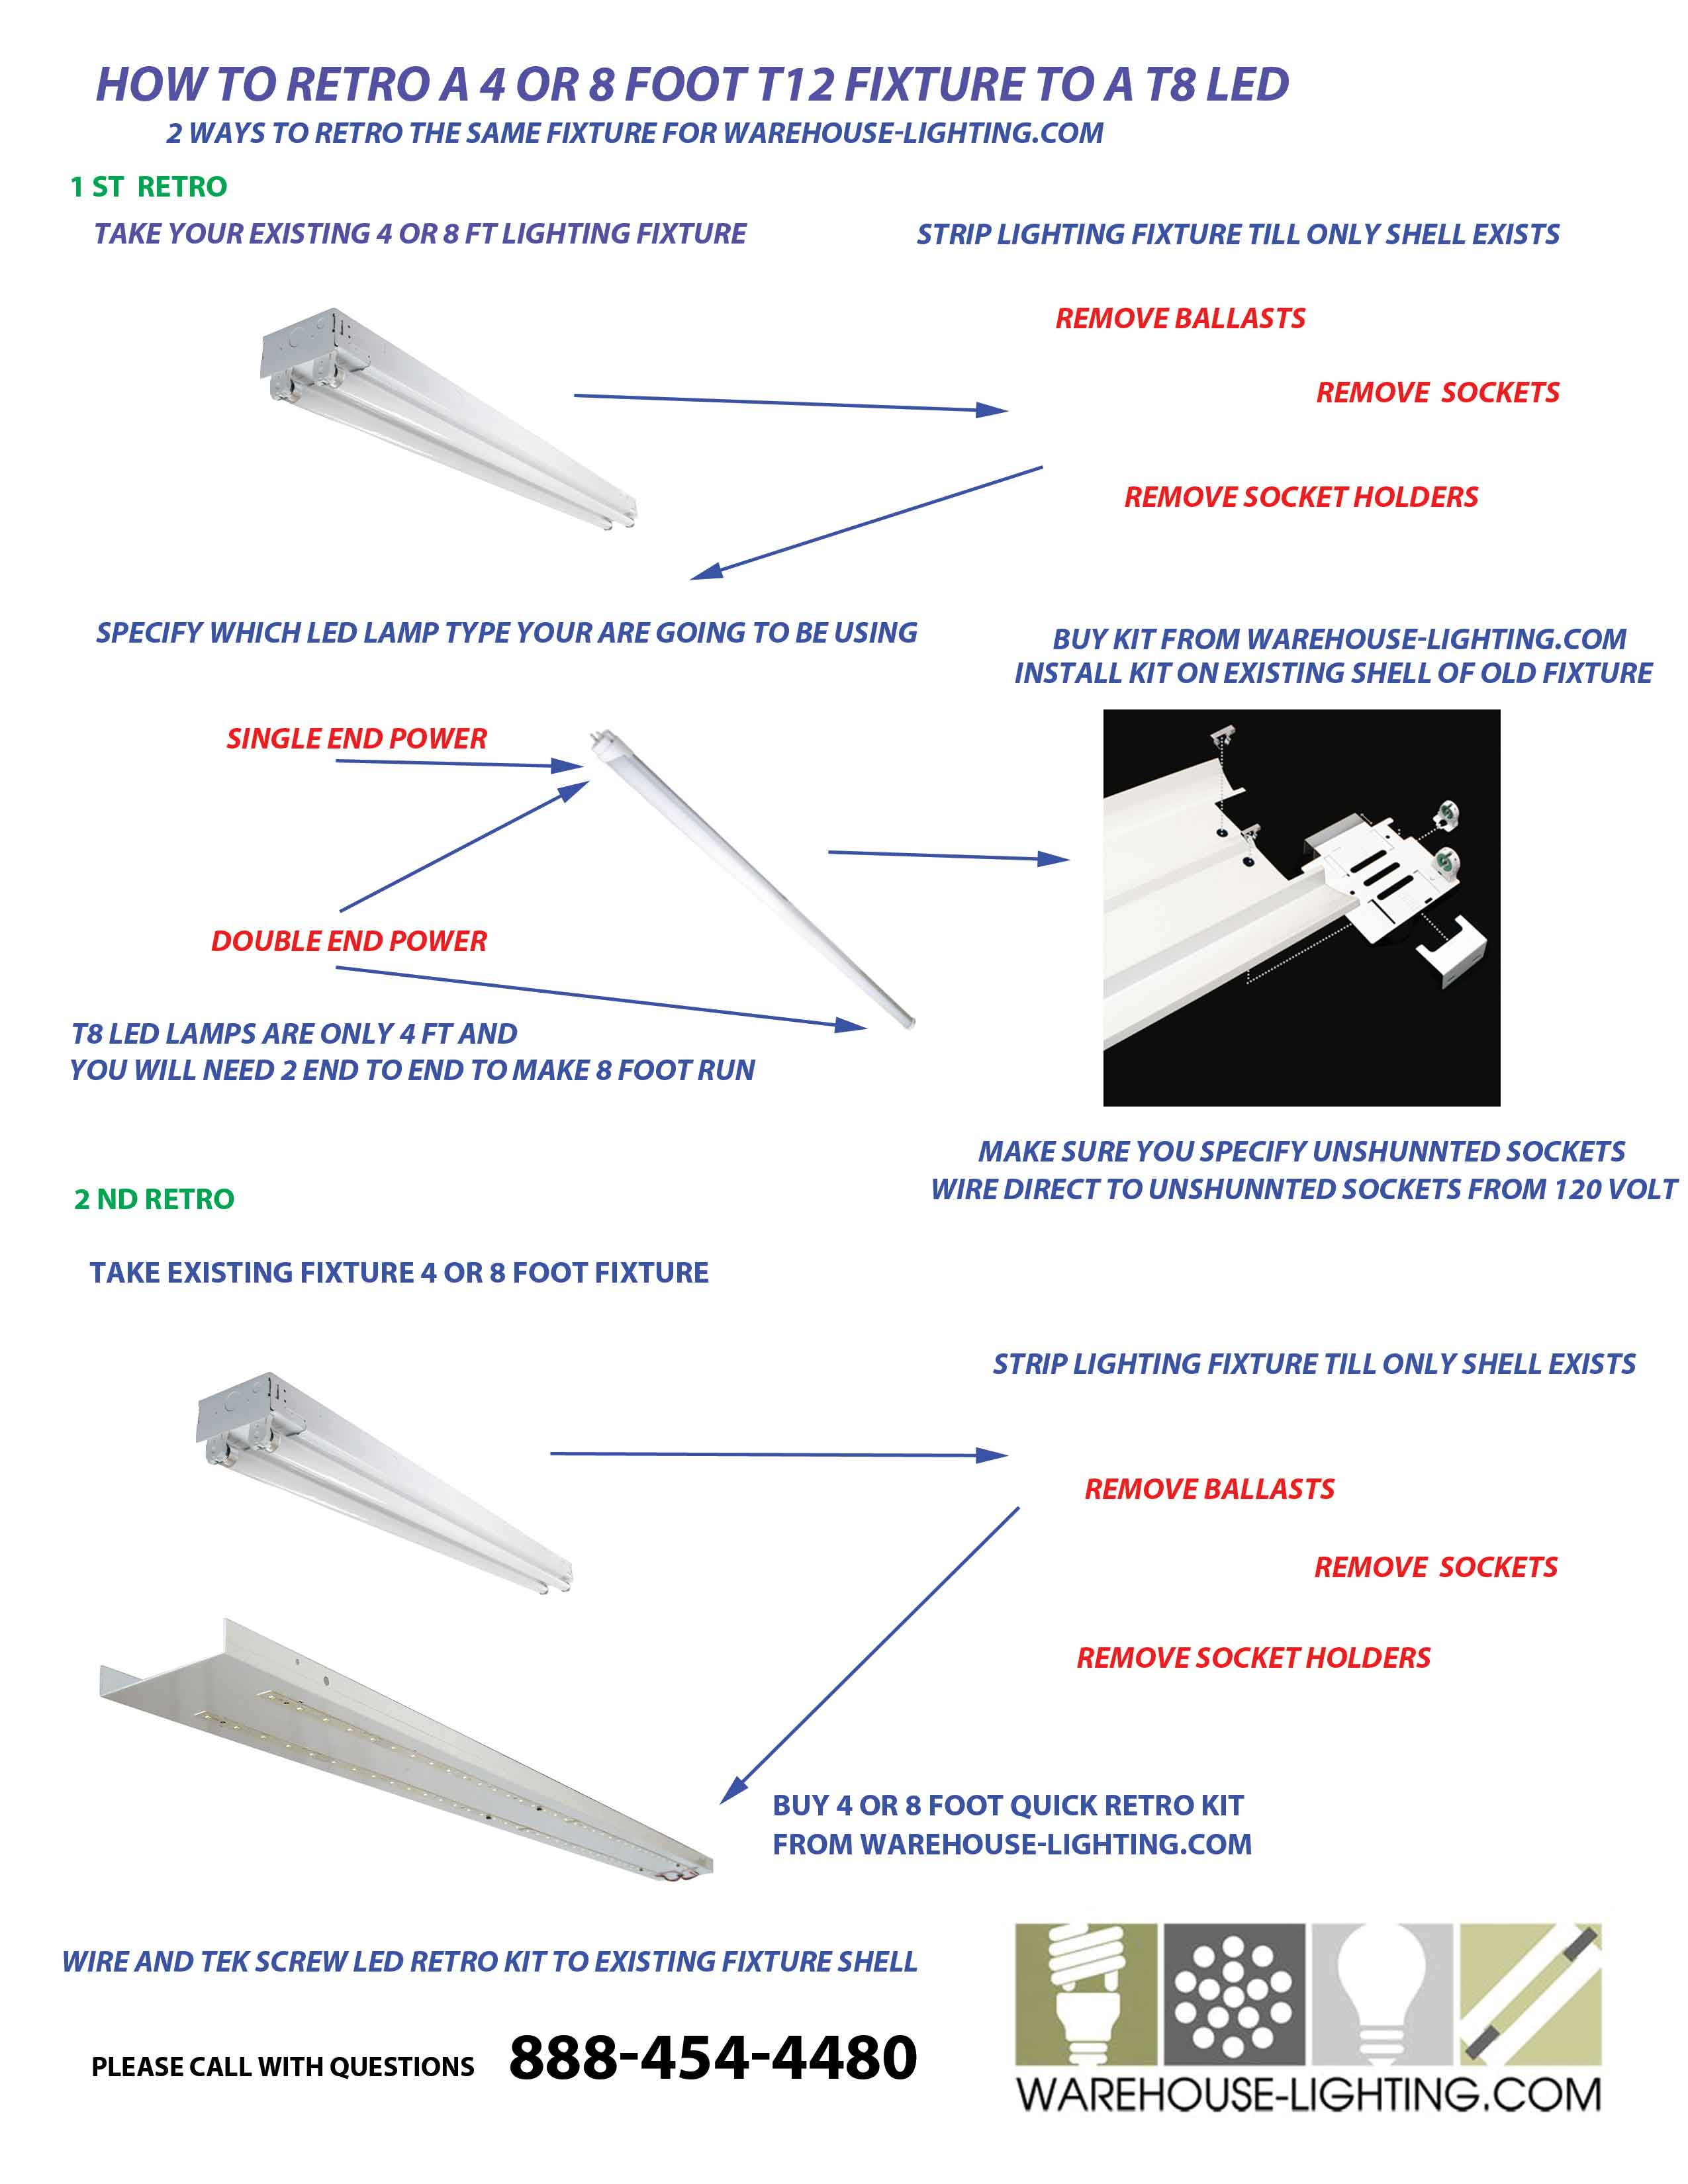 Convert t12 4 and 8 foot fixtures to LED lamps or retro kits   Industrial Light  Fixtures & Lighting For The Future